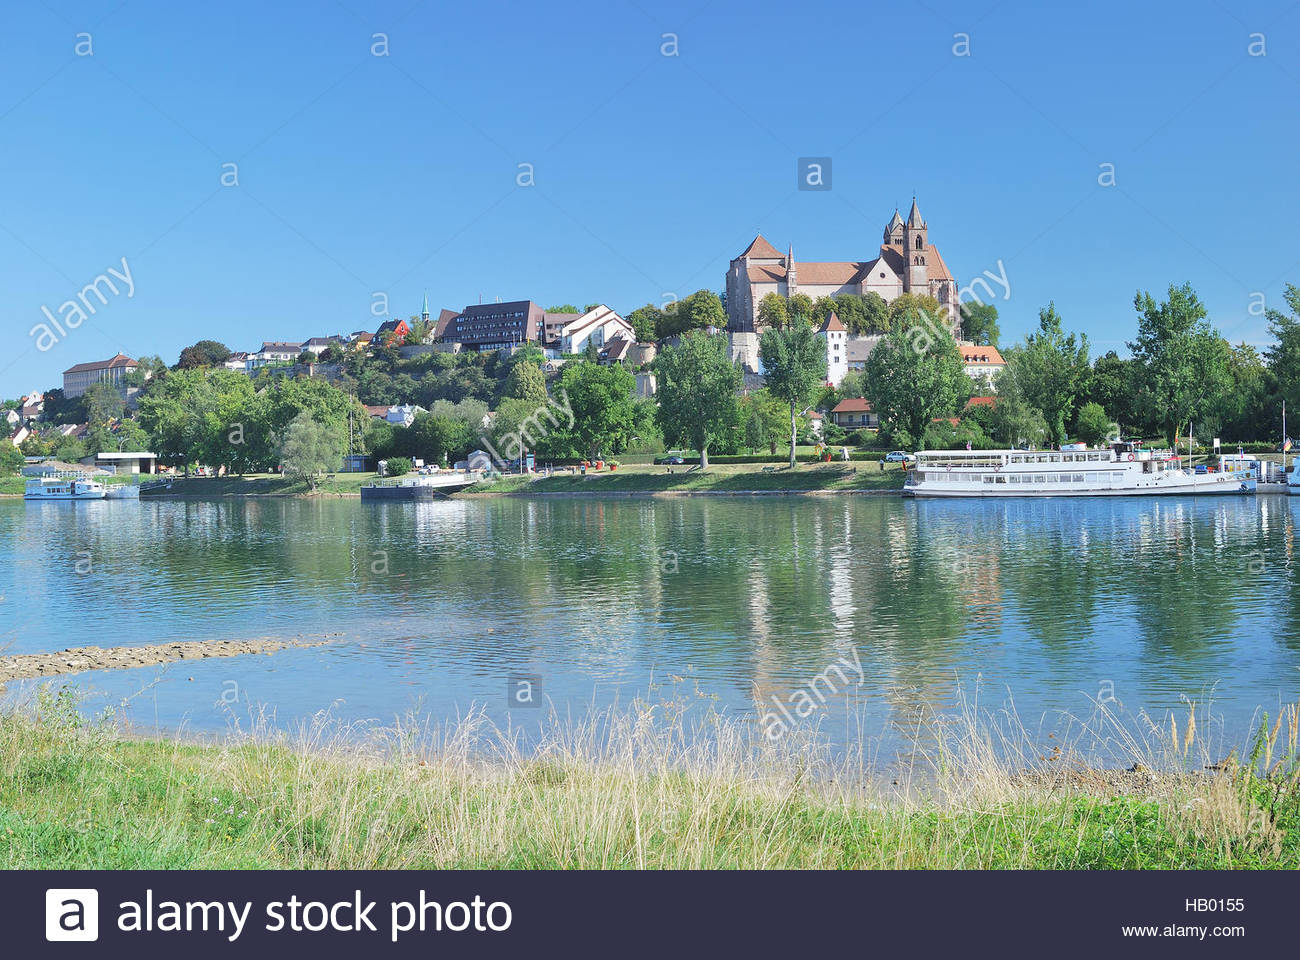 Breisach am Rhine The Black Forest, Breisach at Rhine River,Black Forest,Germany Stock Photo, Royalty ...